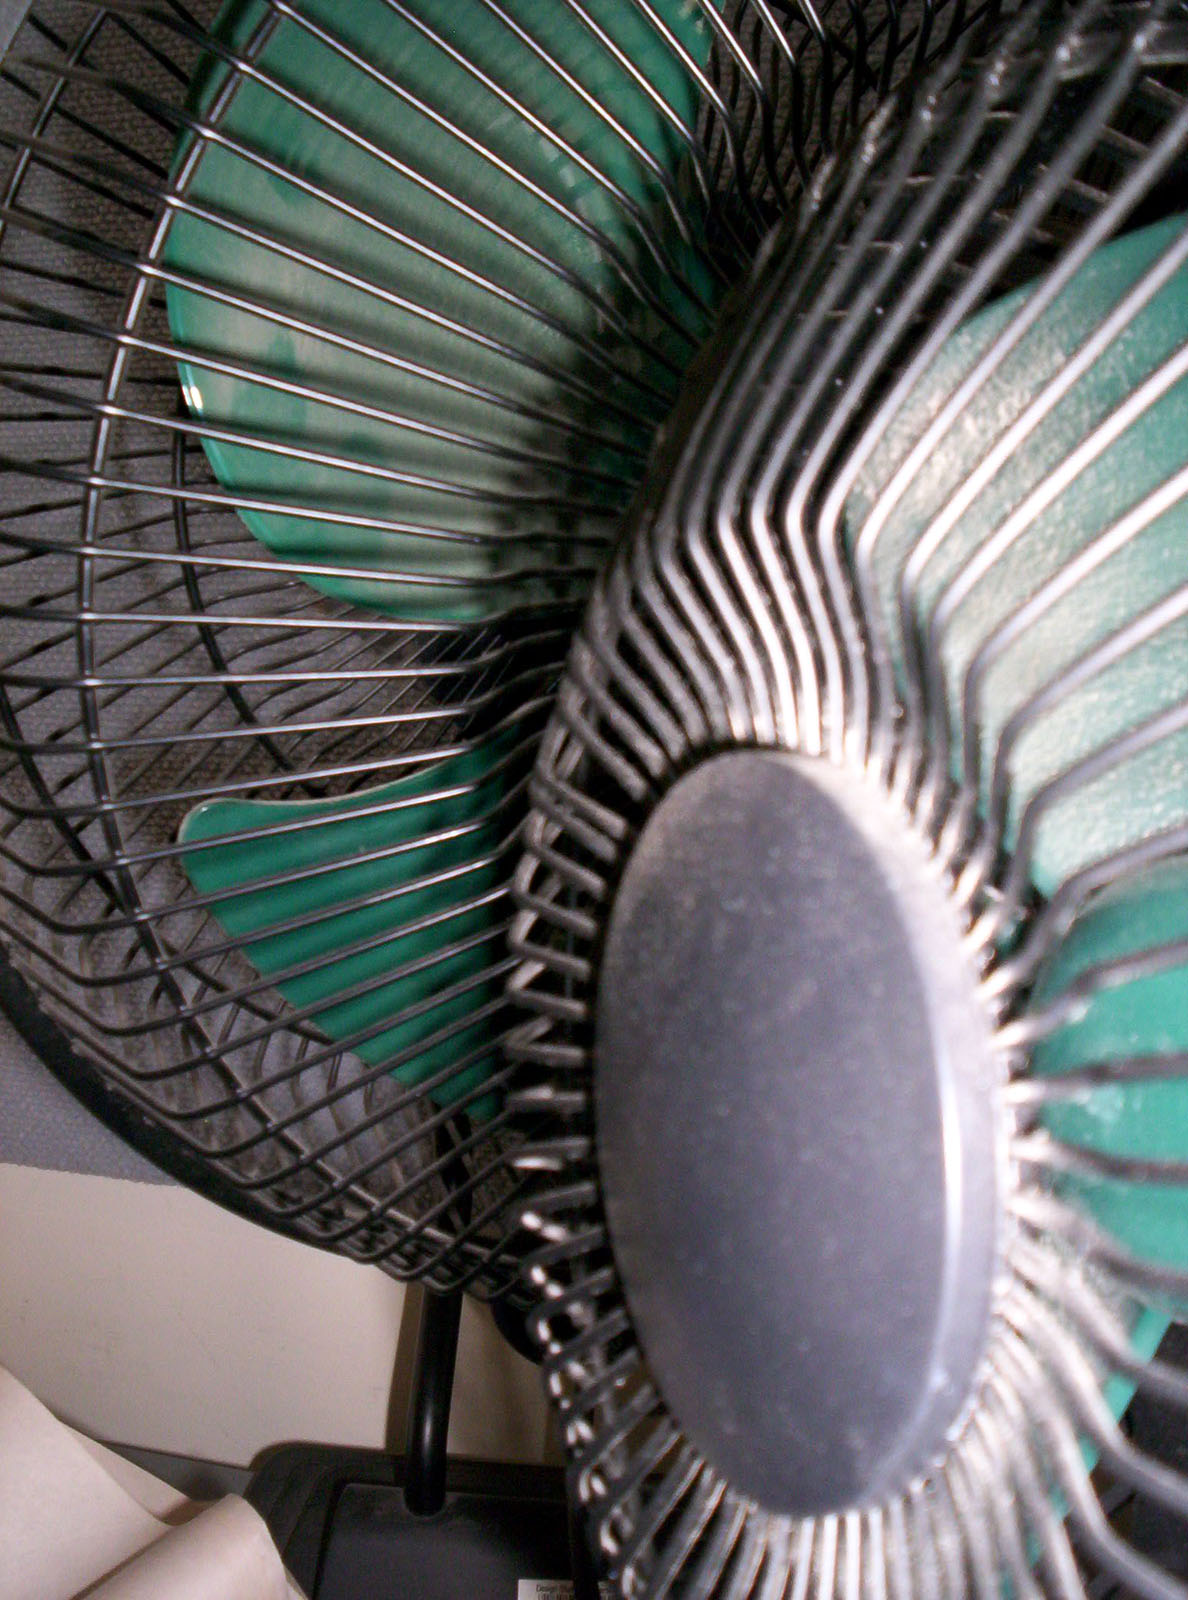 Fan and Grill, Audience, Bspo06, Green, Industry, HQ Photo